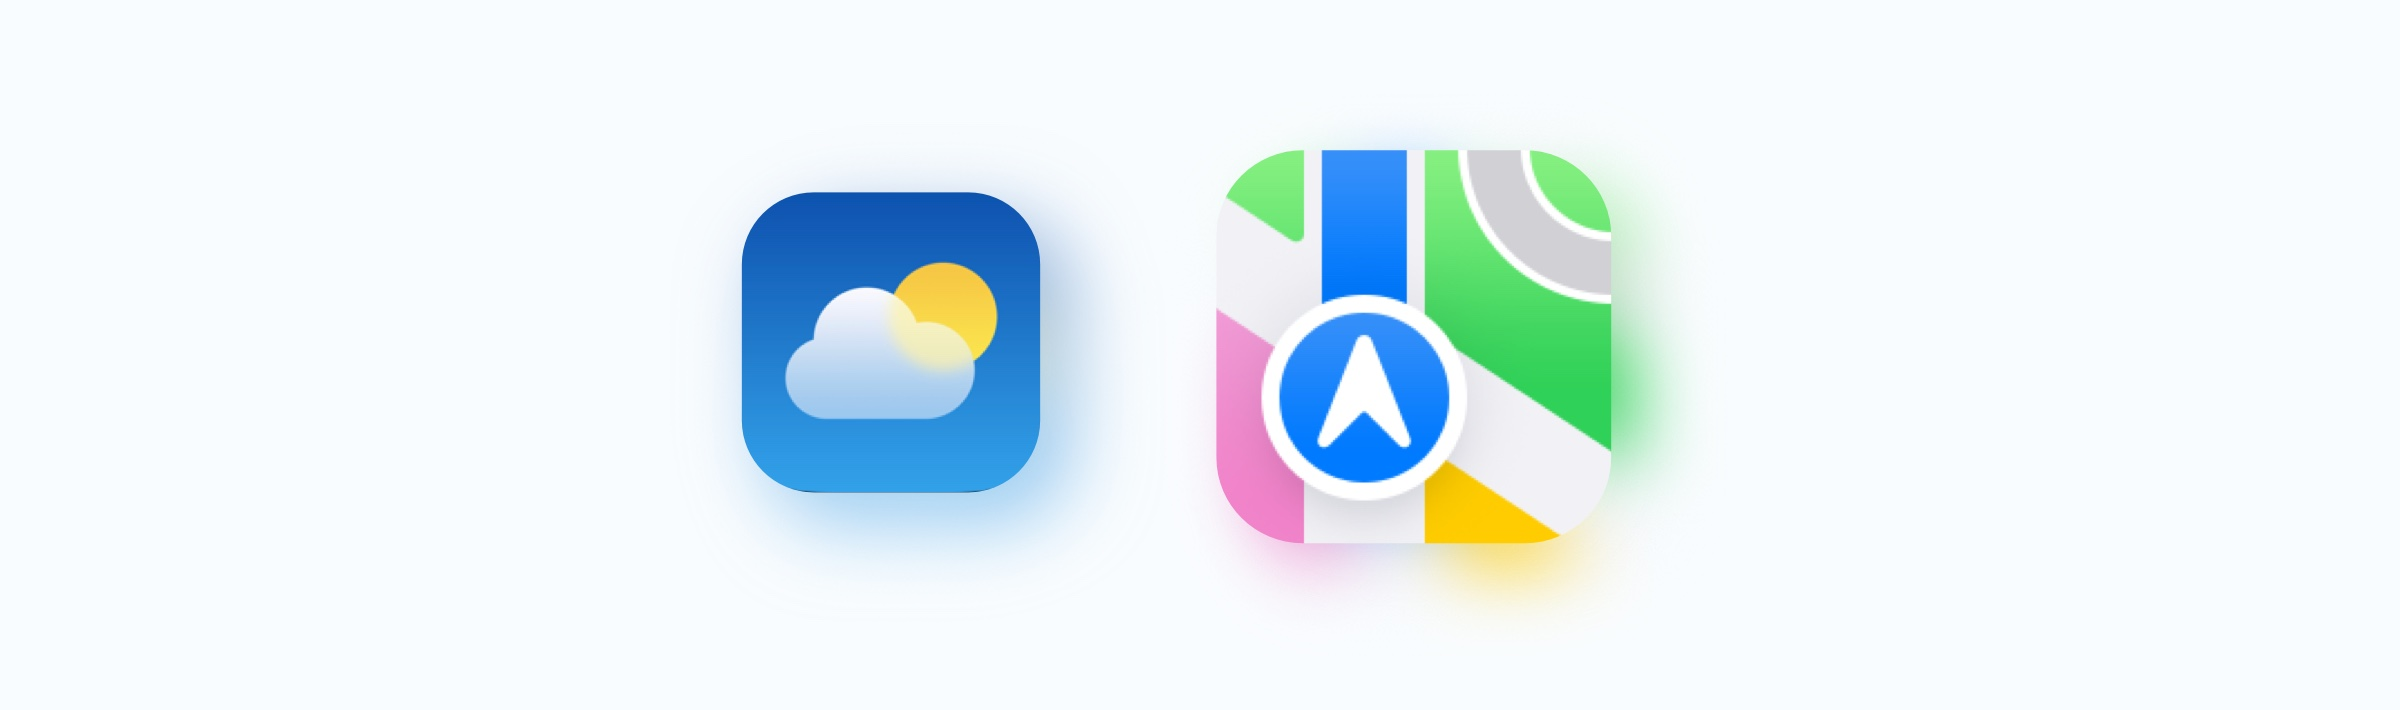 iOS 15 weather and maps icons